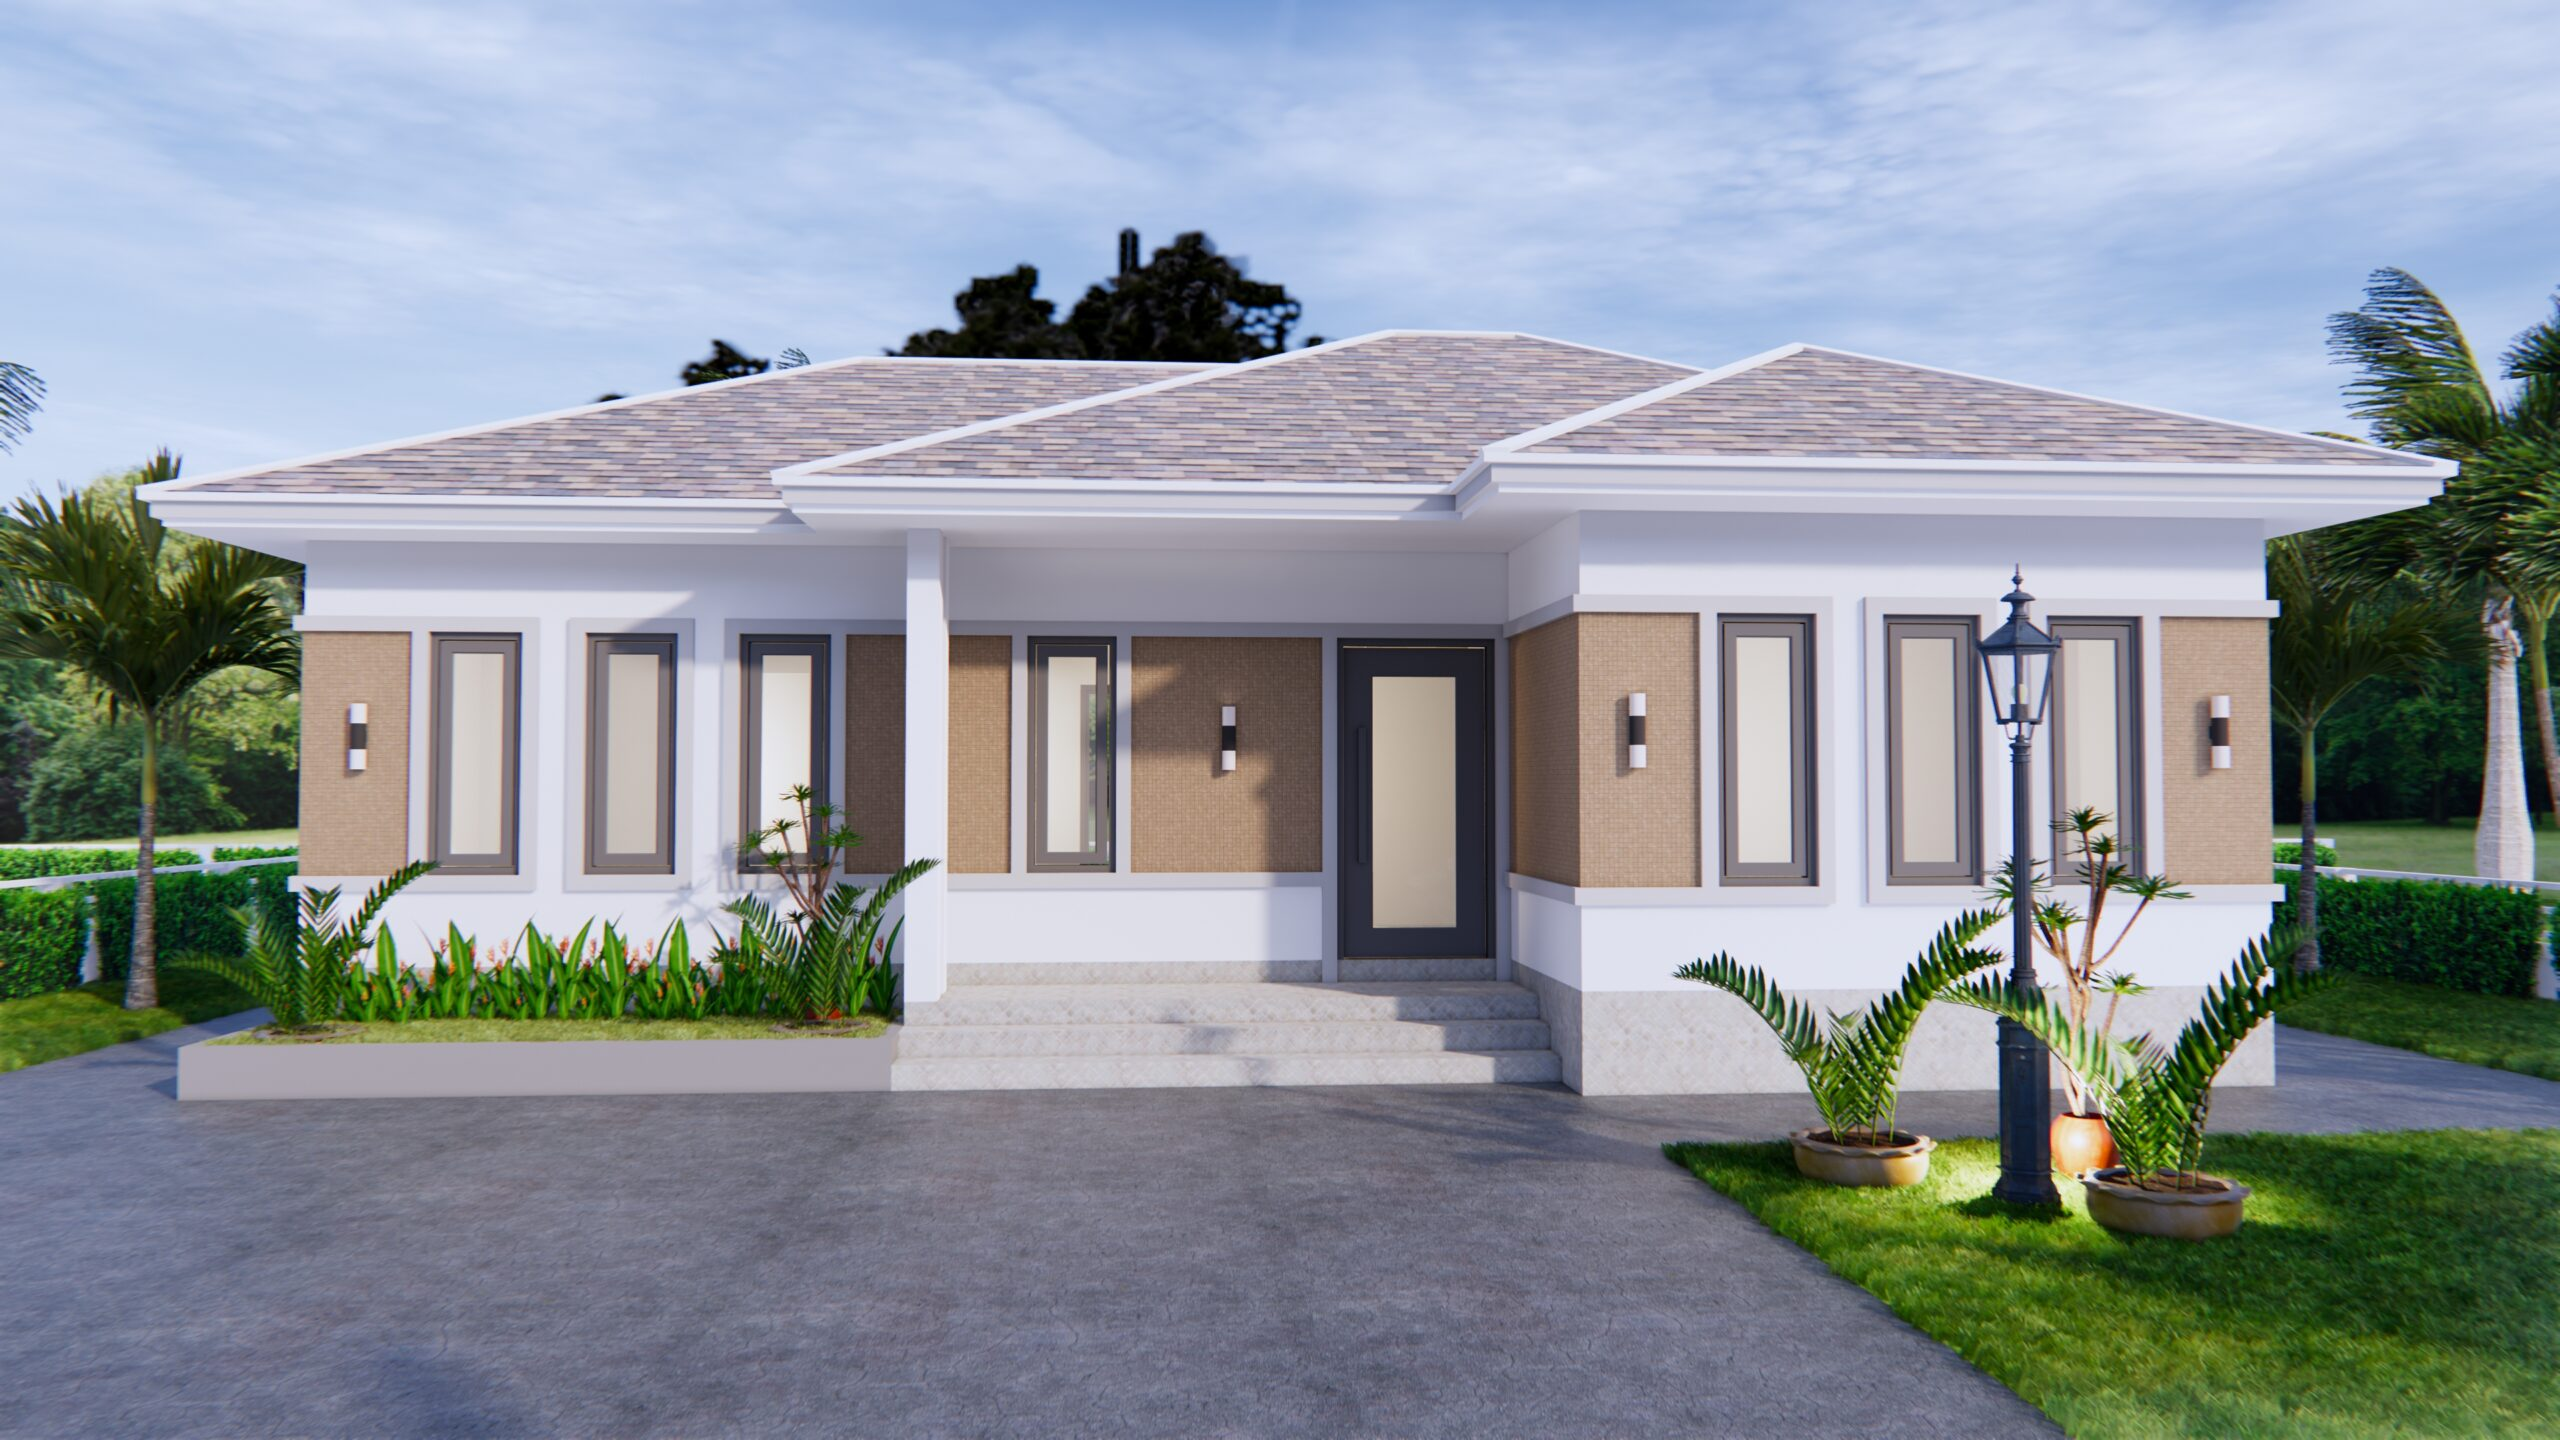 Modern Farmhouse Designs 12x8 Meters 40x26 Feet